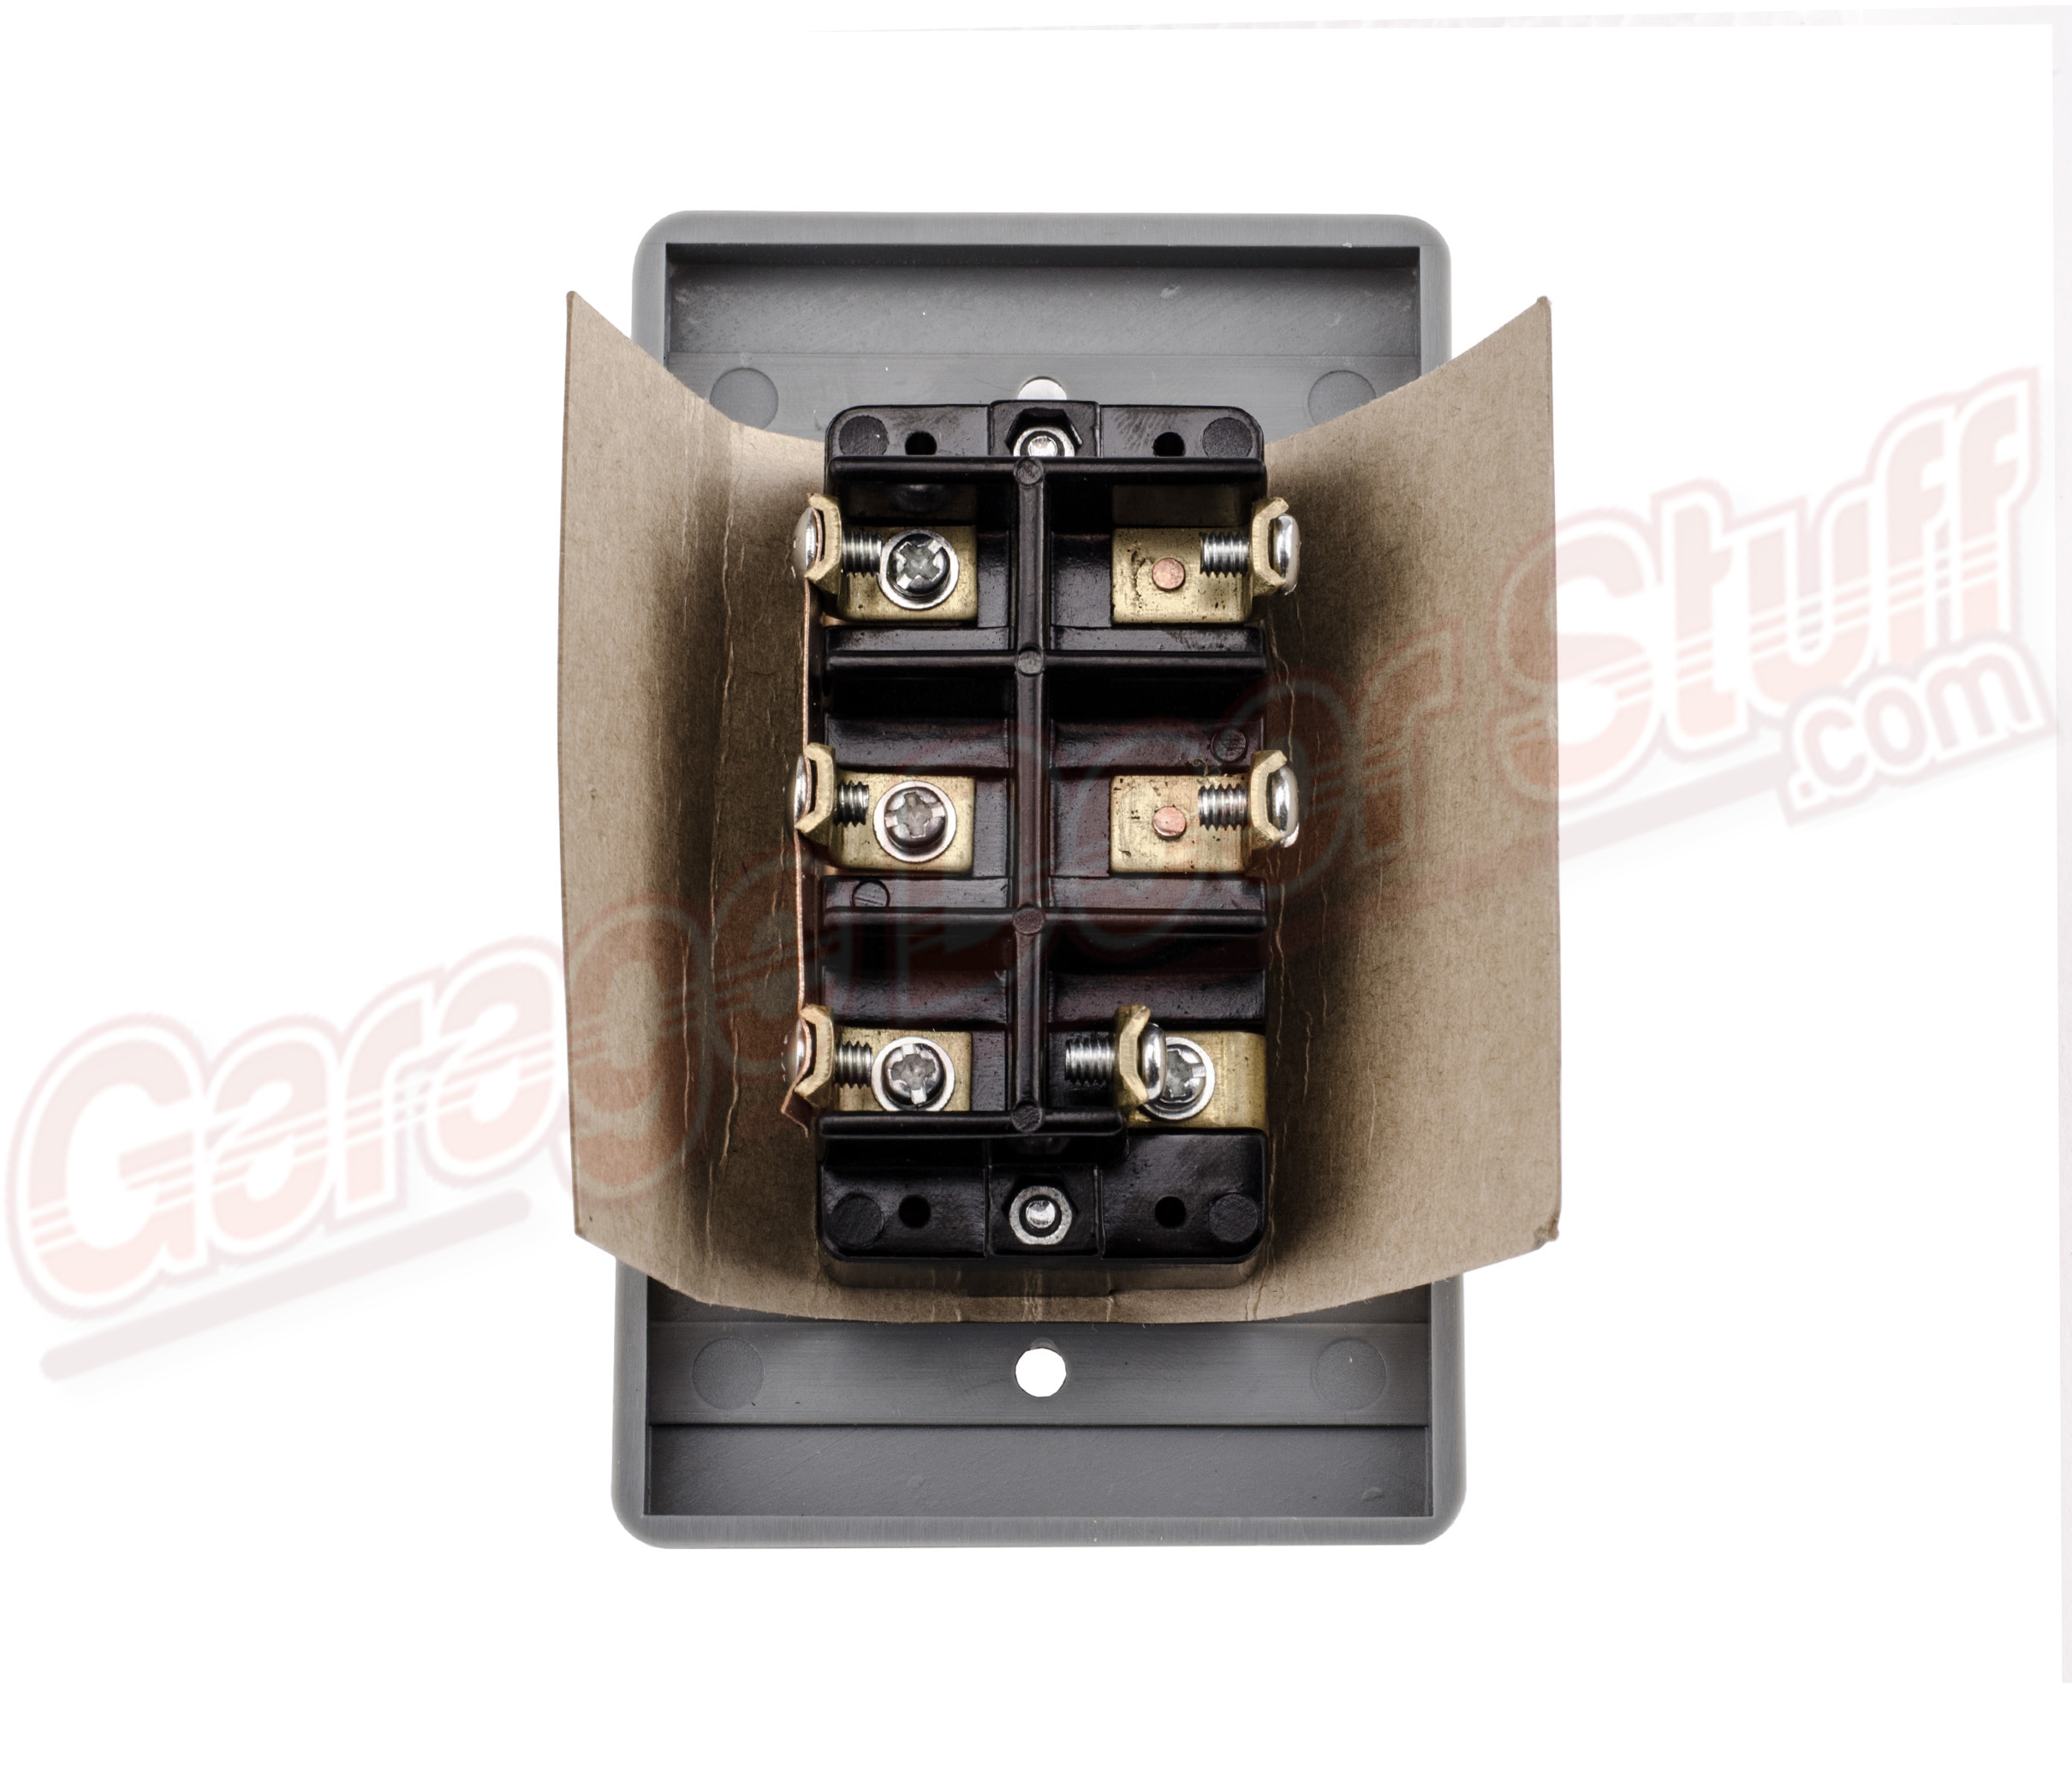 3 Control Station Commercial Garage Door Opener 3 Button Wall Mount LCE